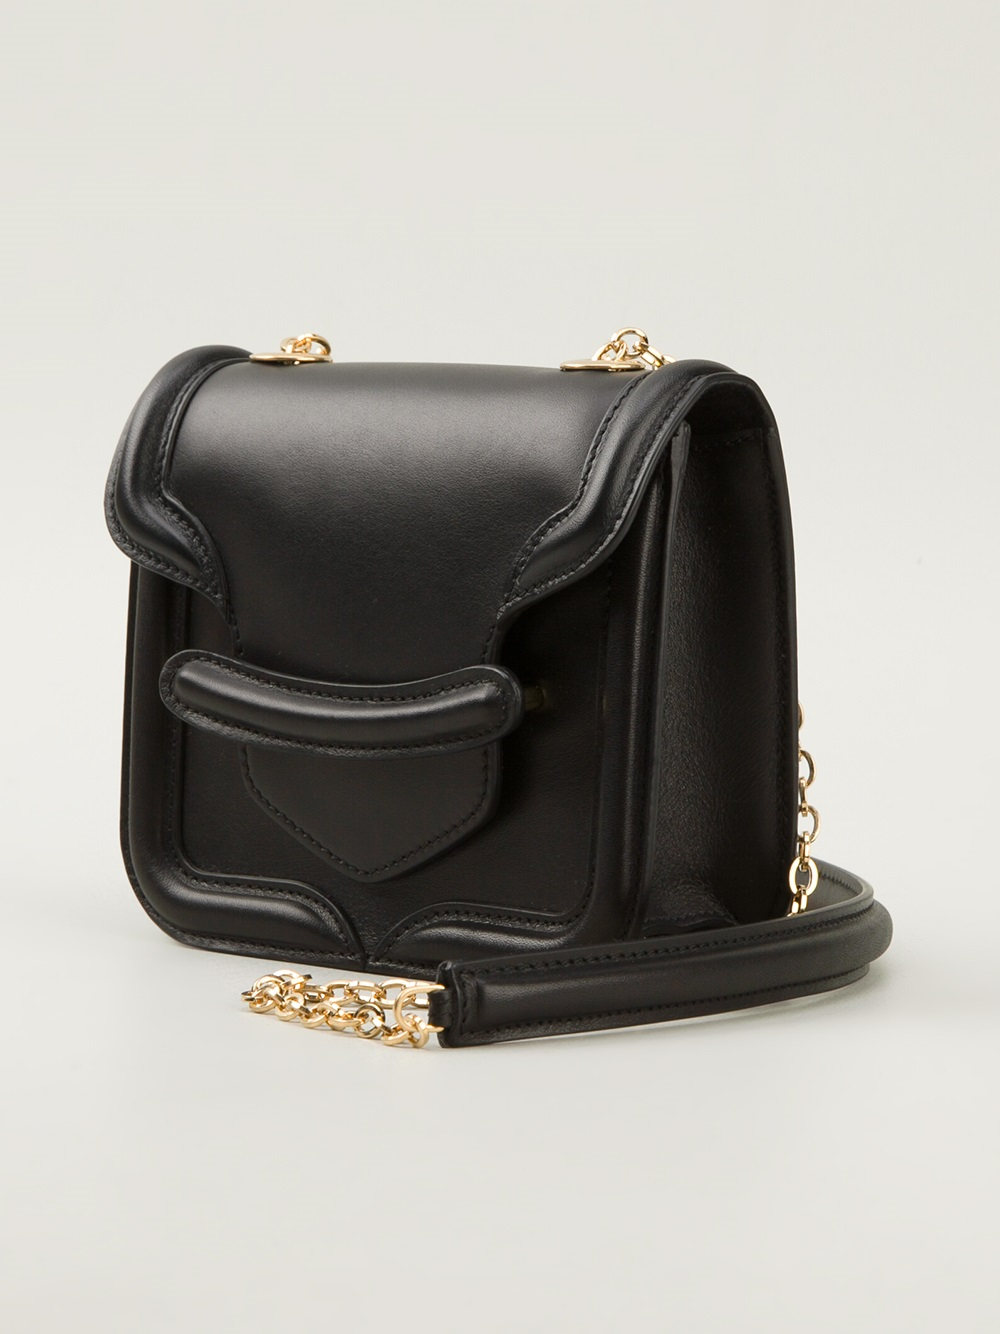 Lyst - Alexander Mcqueen Mini Heroine Bag in Black